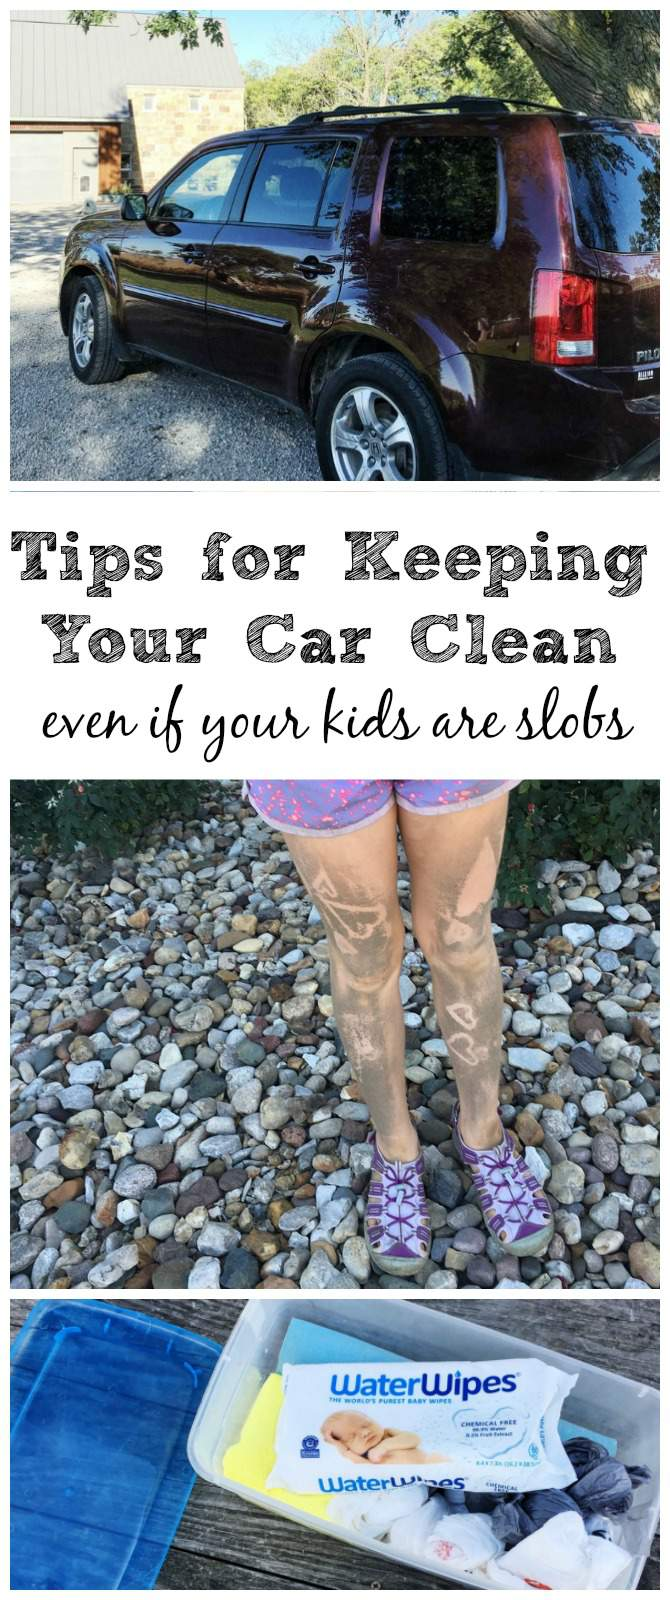 If you're sick of the mess, these 5 easy tips for a clean car will help you a lot. Tip #5 is the best! Make sure you have these things in your car too. AD